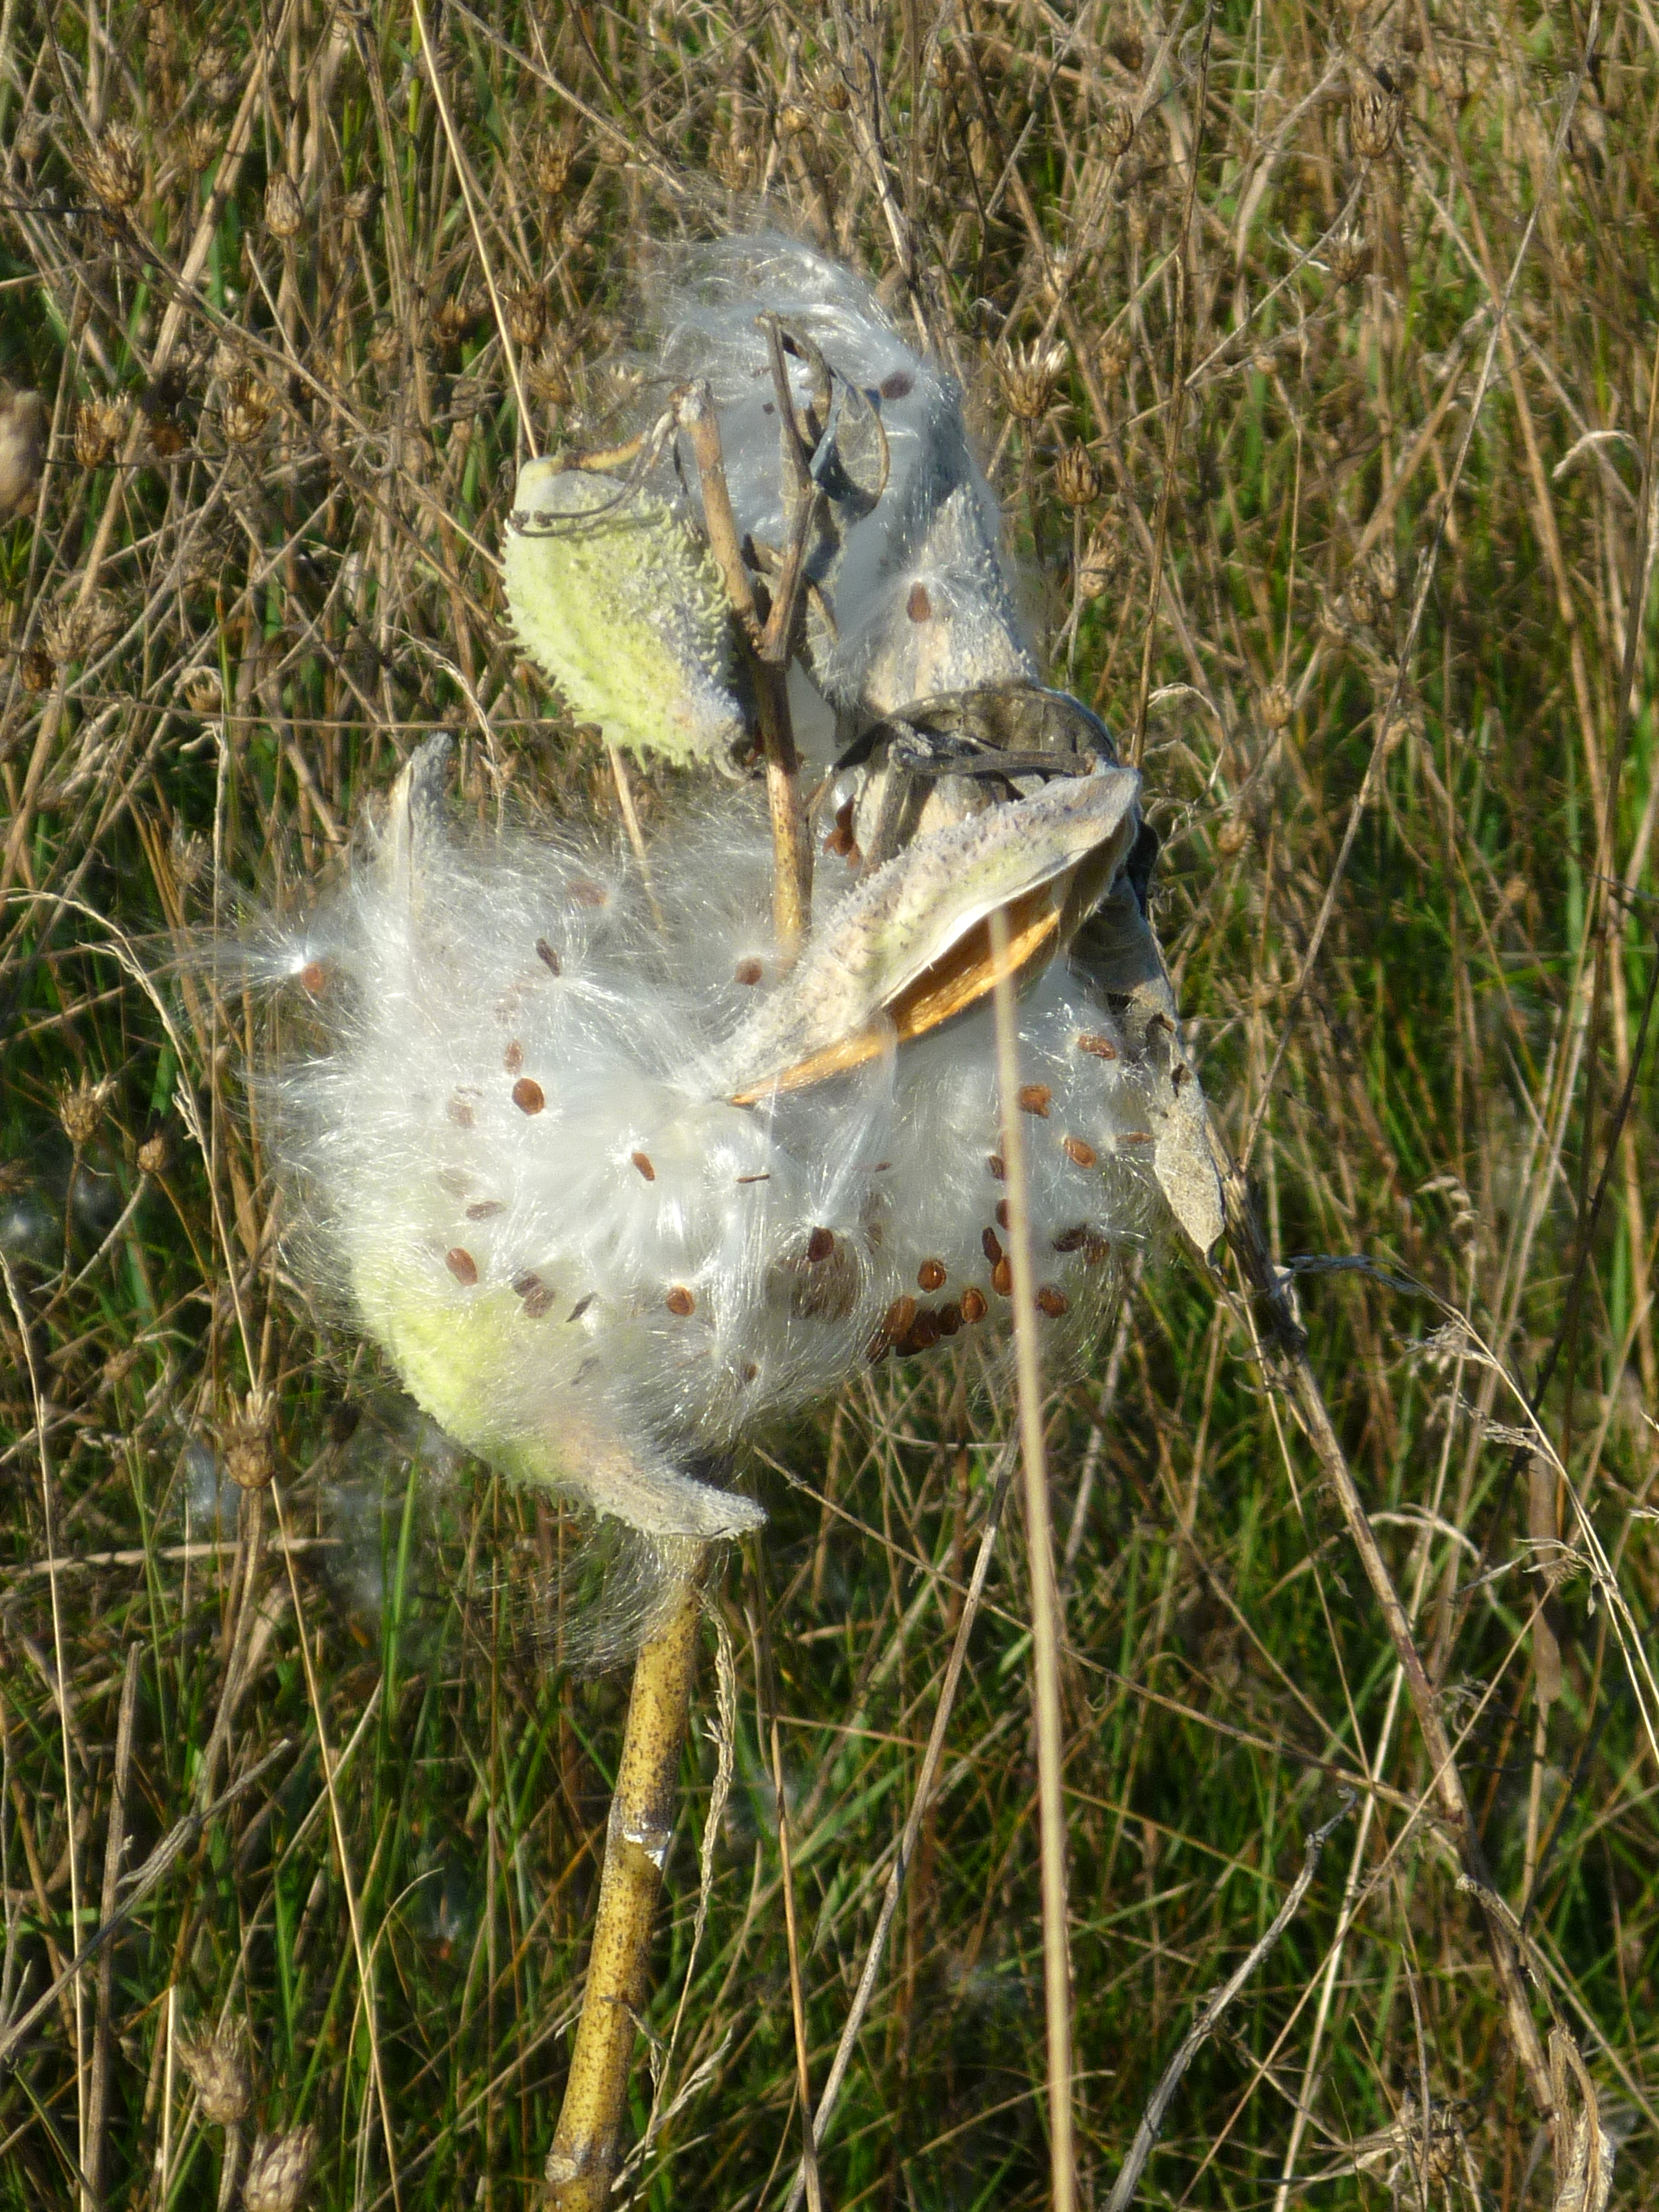 Milkweed Puffs – Seed Pods Beaking Open Indoors and Out